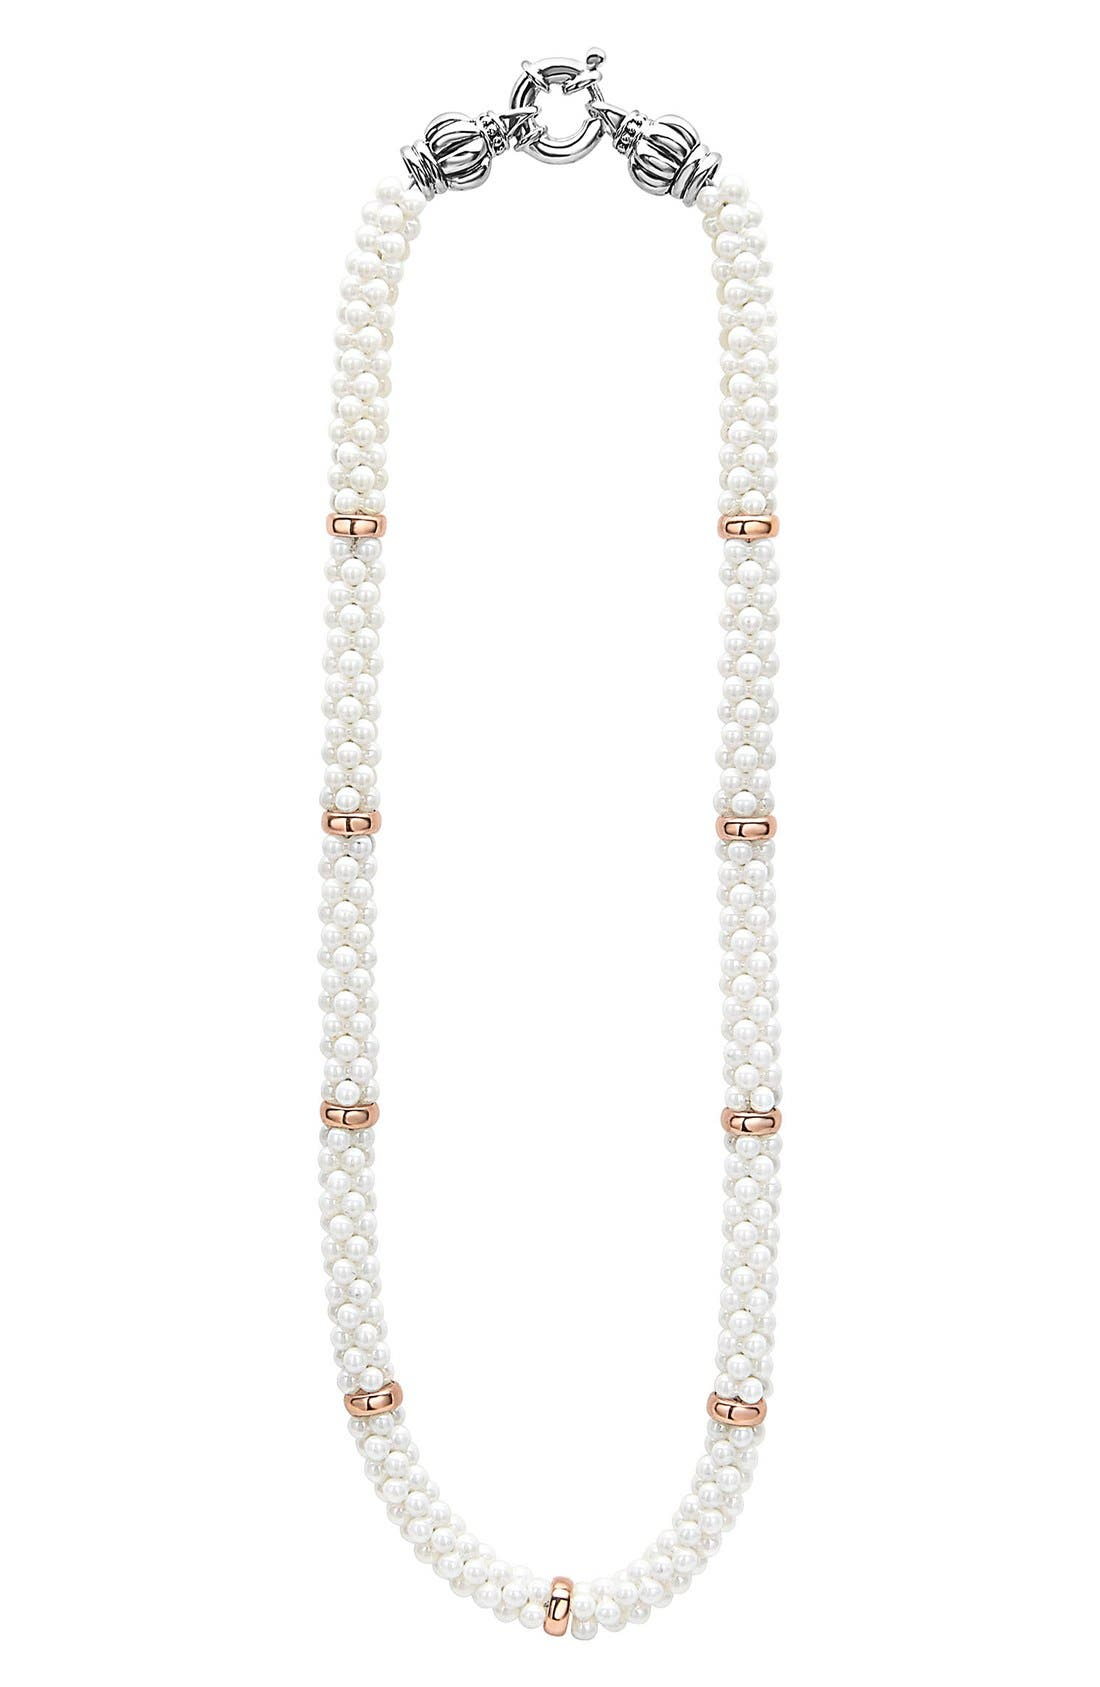 LAGOS 'White Caviar' 7mm Beaded Station Necklace